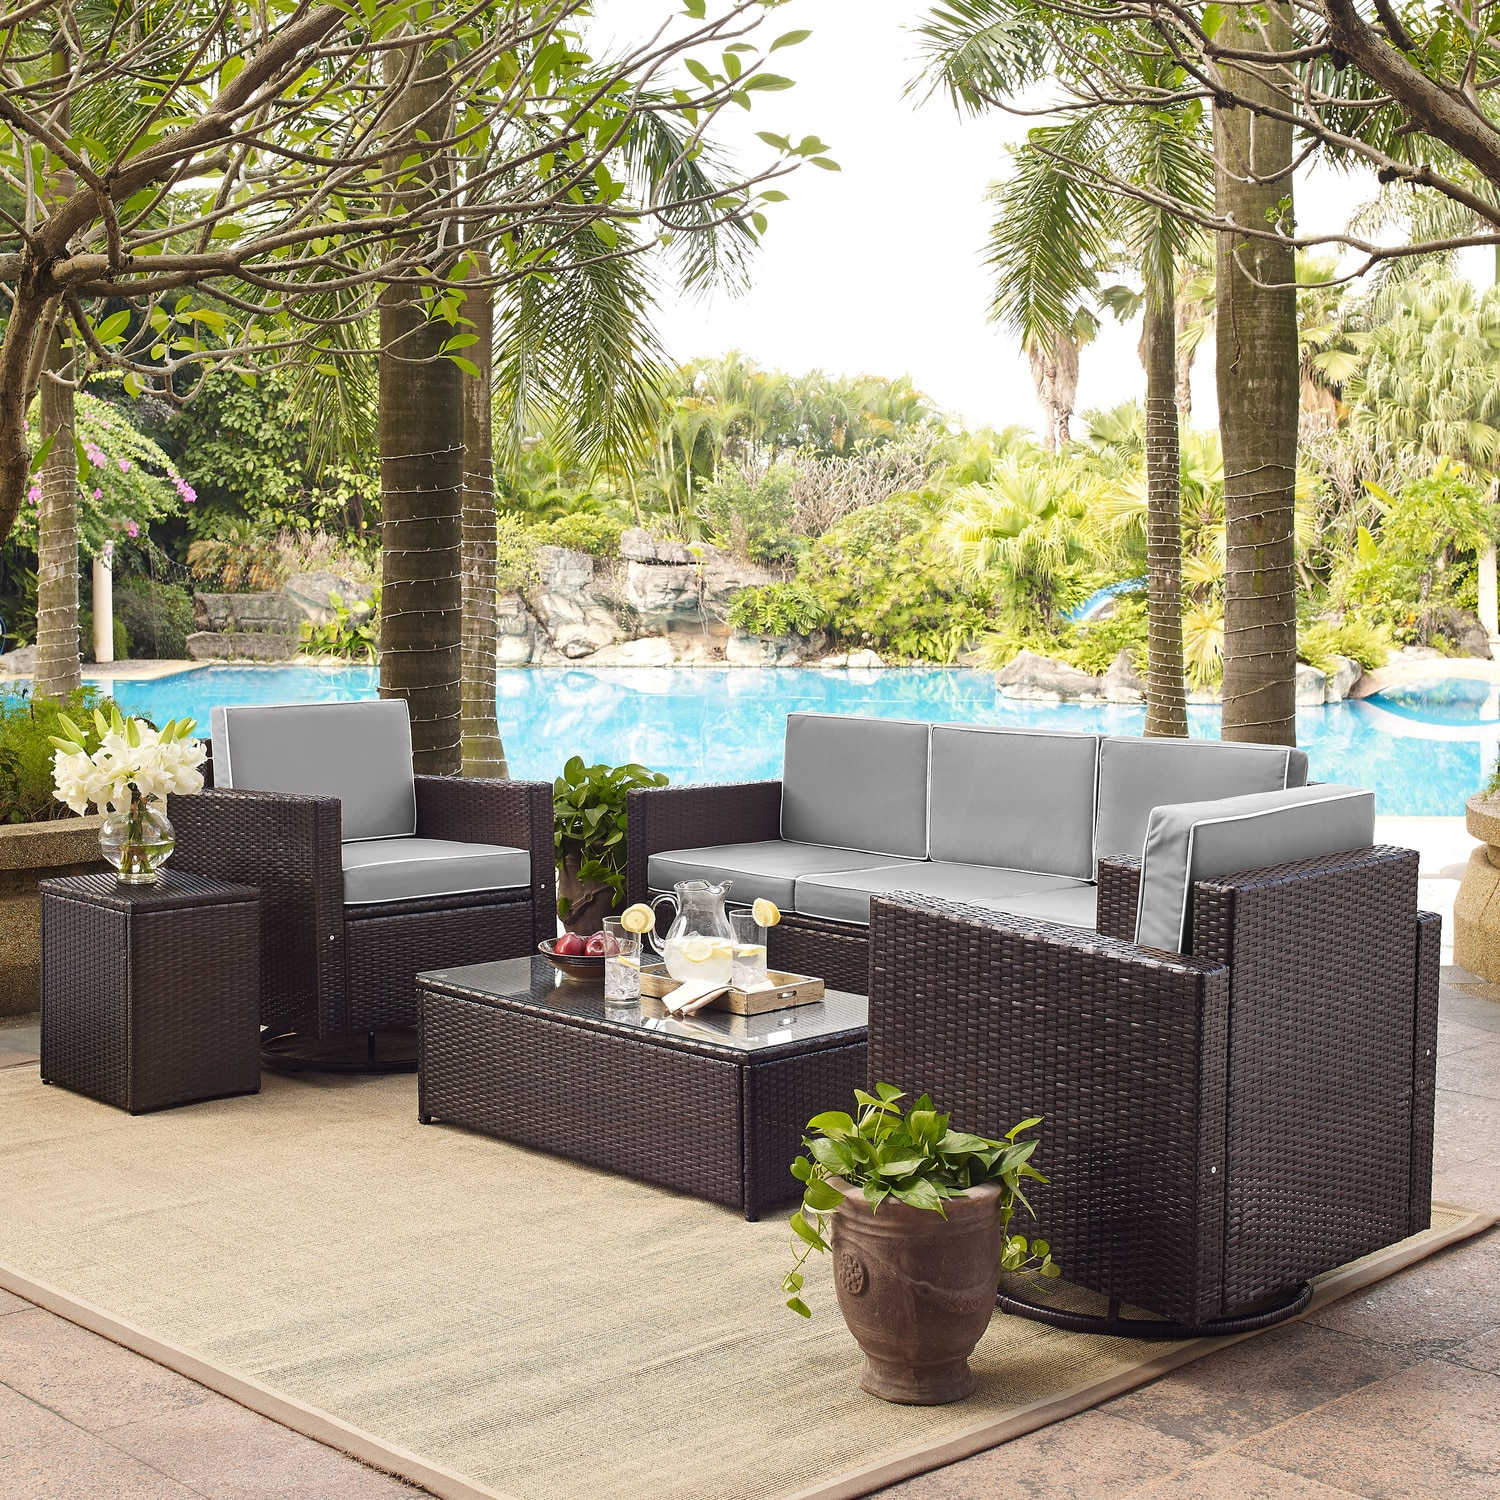 Outdoor Furniture - Aldo Outdoor Sofa, 2 Swivel Chairs, Coffee Table, and End Table Set